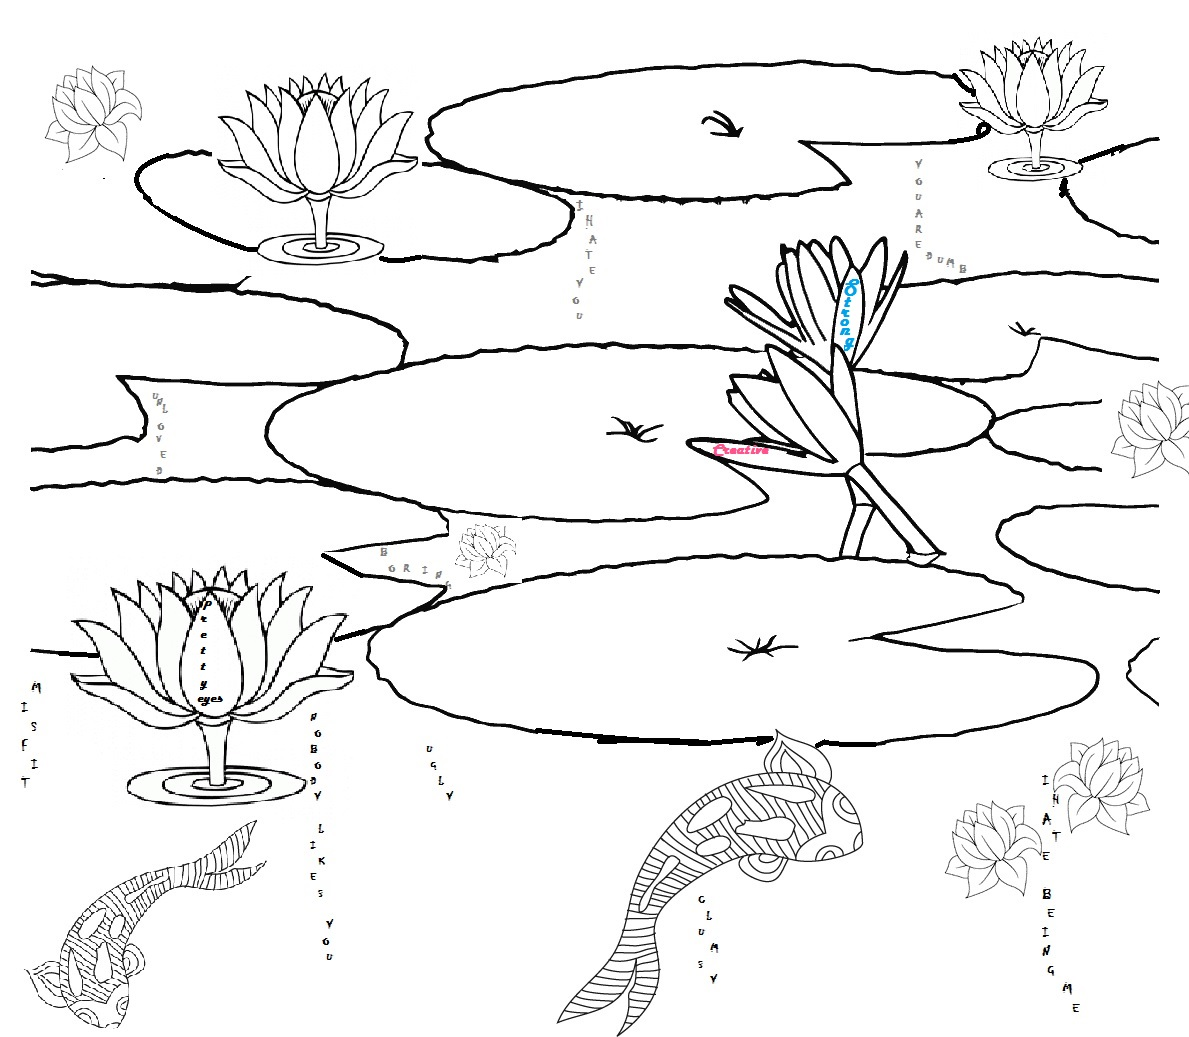 Fish Pond Drawing at GetDrawings.com | Free for personal use Fish ...